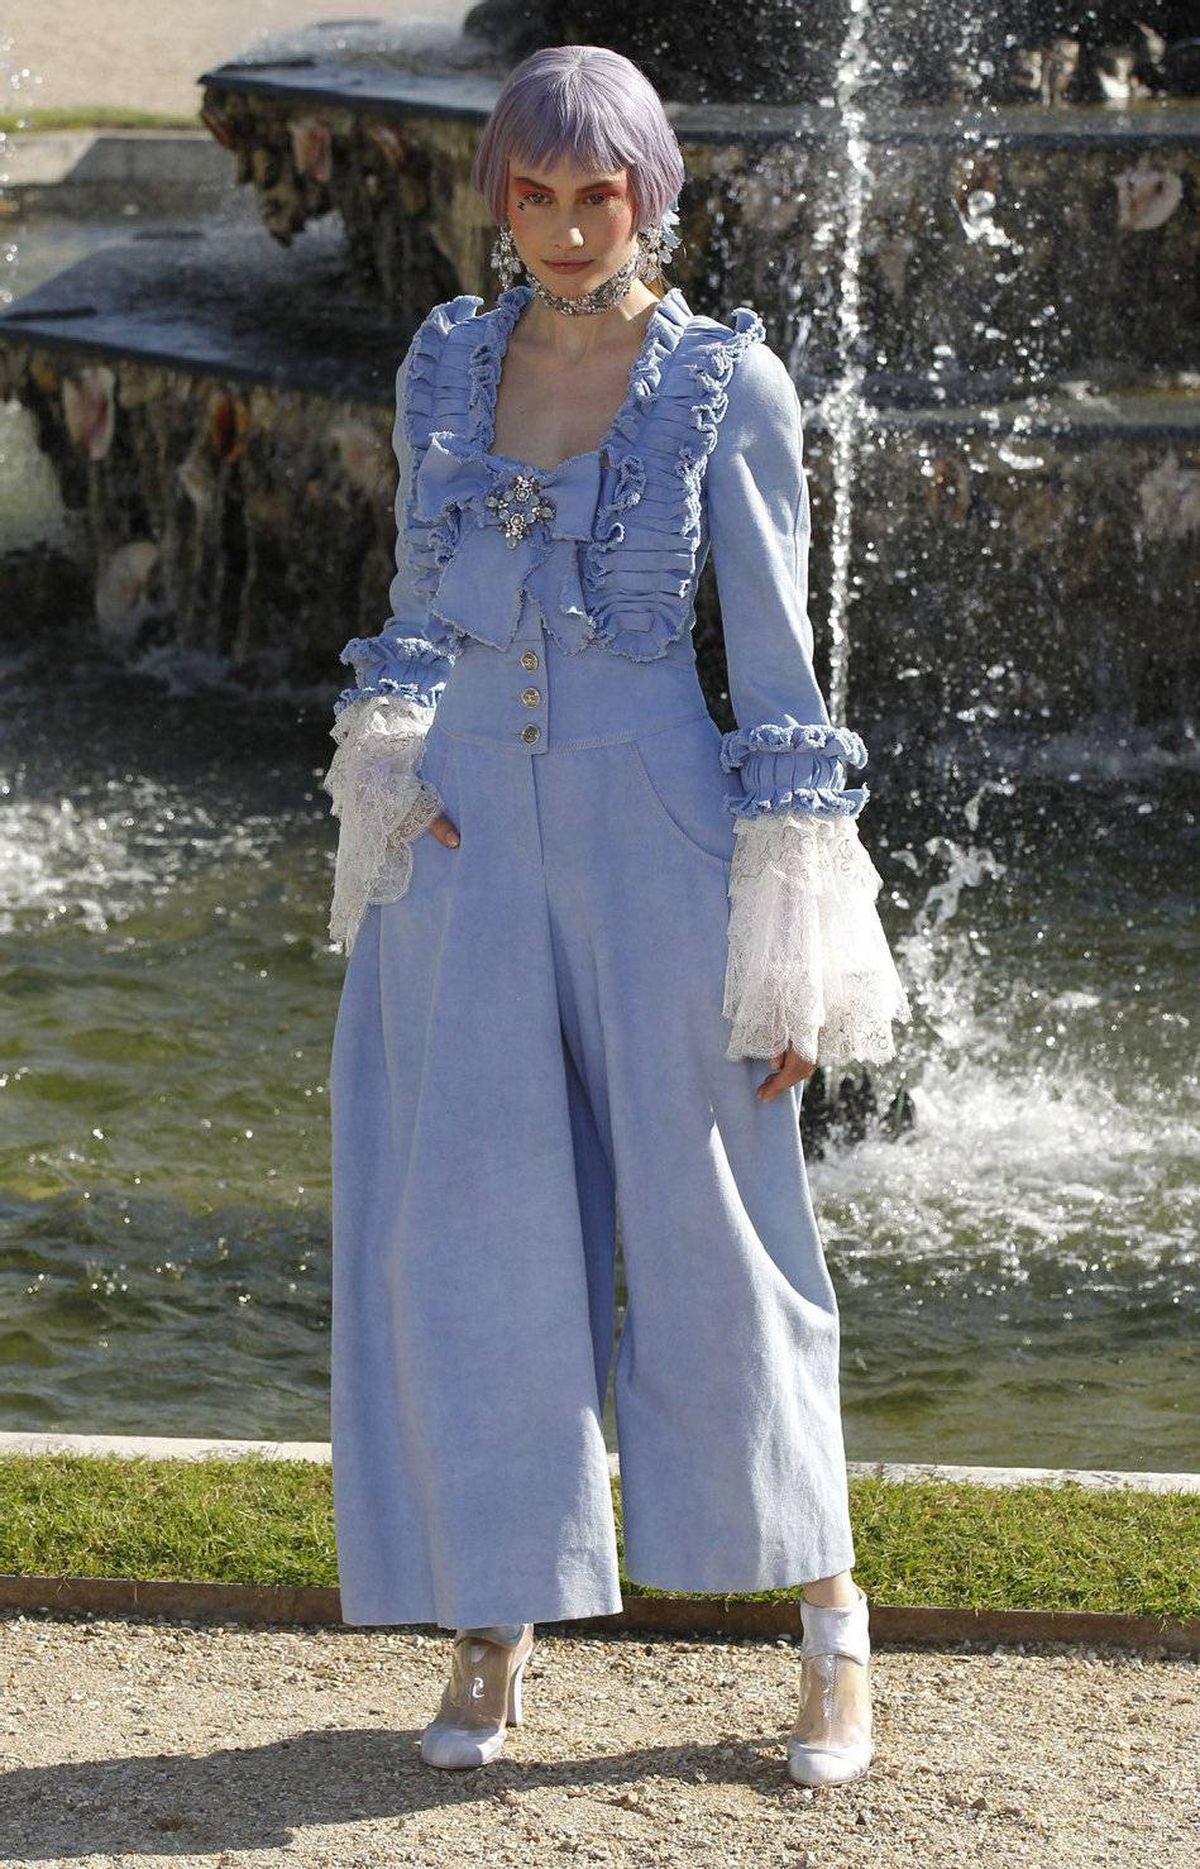 With a remix of MIA's Bad Girls blaring through the garden setting, models strolled through the gravel like descendants of Marie Antoinette by way of 1980s SoHo. Here, casual chambray counters the period details. Also, of course, jumpsuits did not exist in the 18th century.